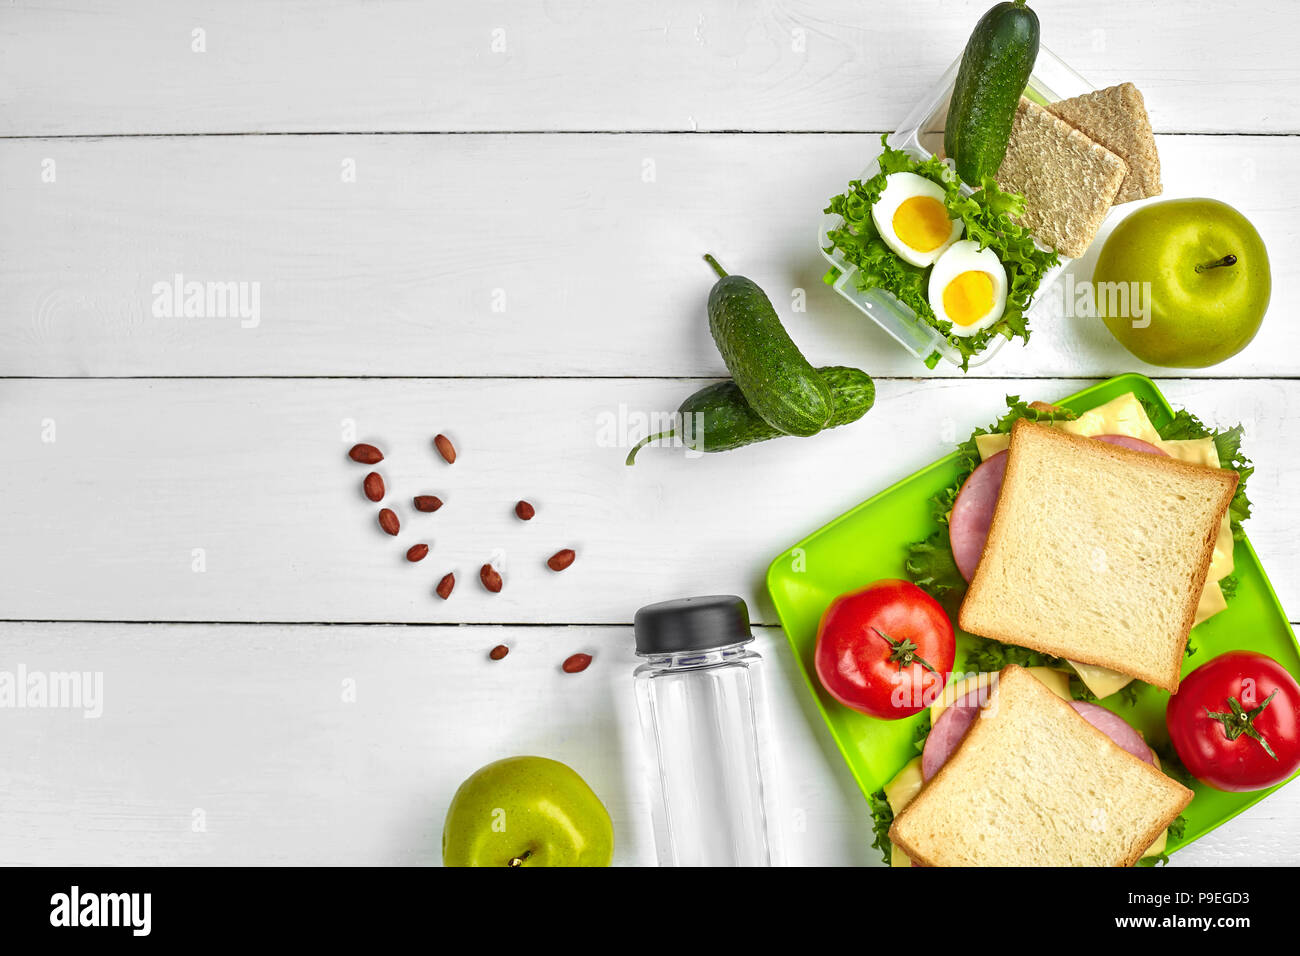 Lunch Sandwich And Fresh Vegetables Bottle Of Water Nuts And Fruits On White Wooden Background Healthy Eating Concept Top View With Copy Space Stock Photo Alamy Everyday, you'll have to make a decision about issues regarding environmental health, emission, etc. https www alamy com lunch sandwich and fresh vegetables bottle of water nuts and fruits on white wooden background healthy eating concept top view with copy space image212376559 html